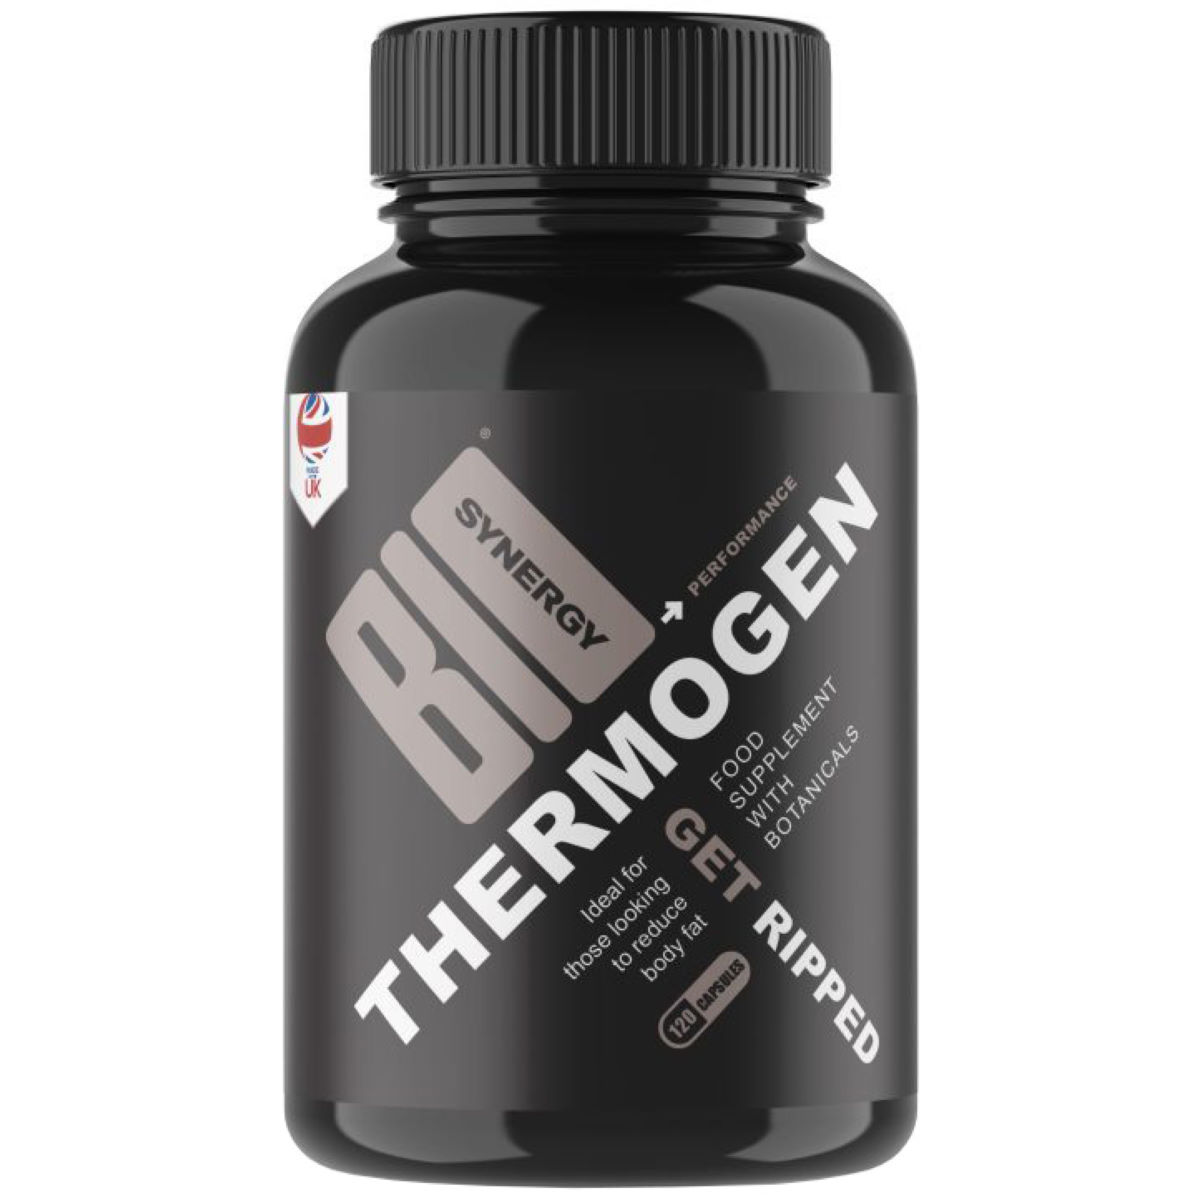 Bio-Synergy Bio-Synergy Thermogen (120 capsules)   Supplements